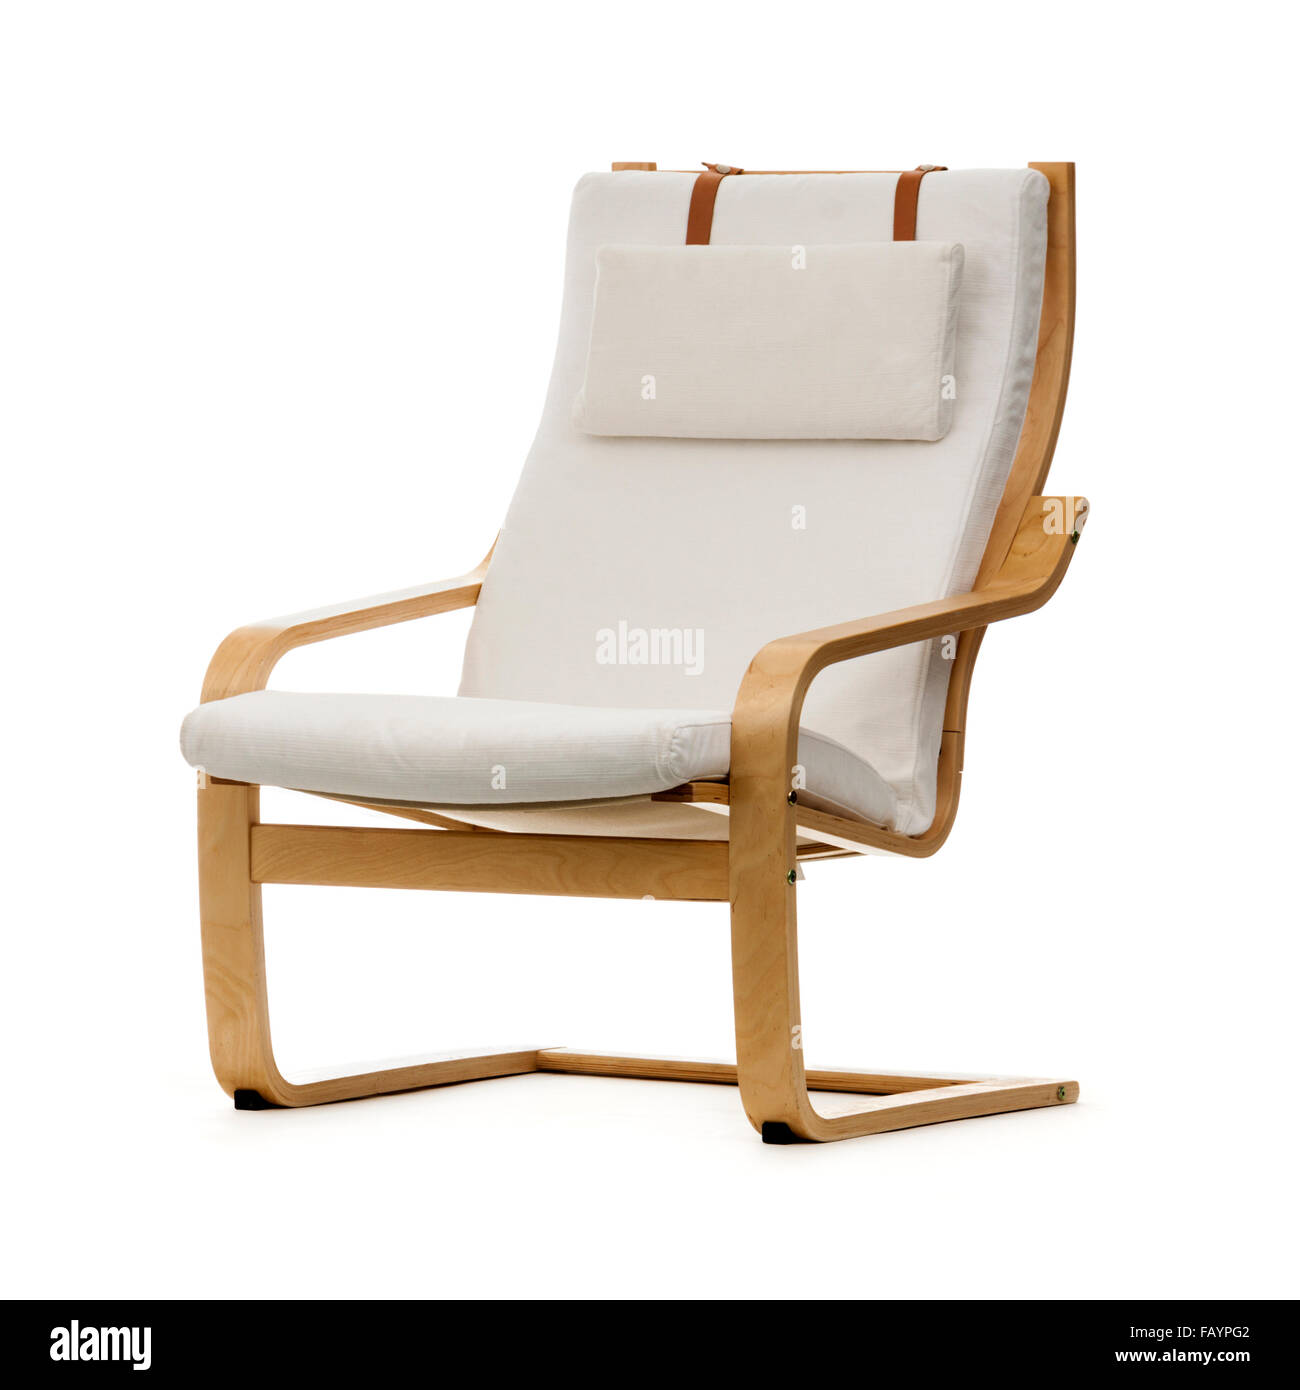 poang chairs stryker 5050 stretcher chair parts ikea introduced in 1977 as the poem and renamed to 1992 it s one of company iconic designs